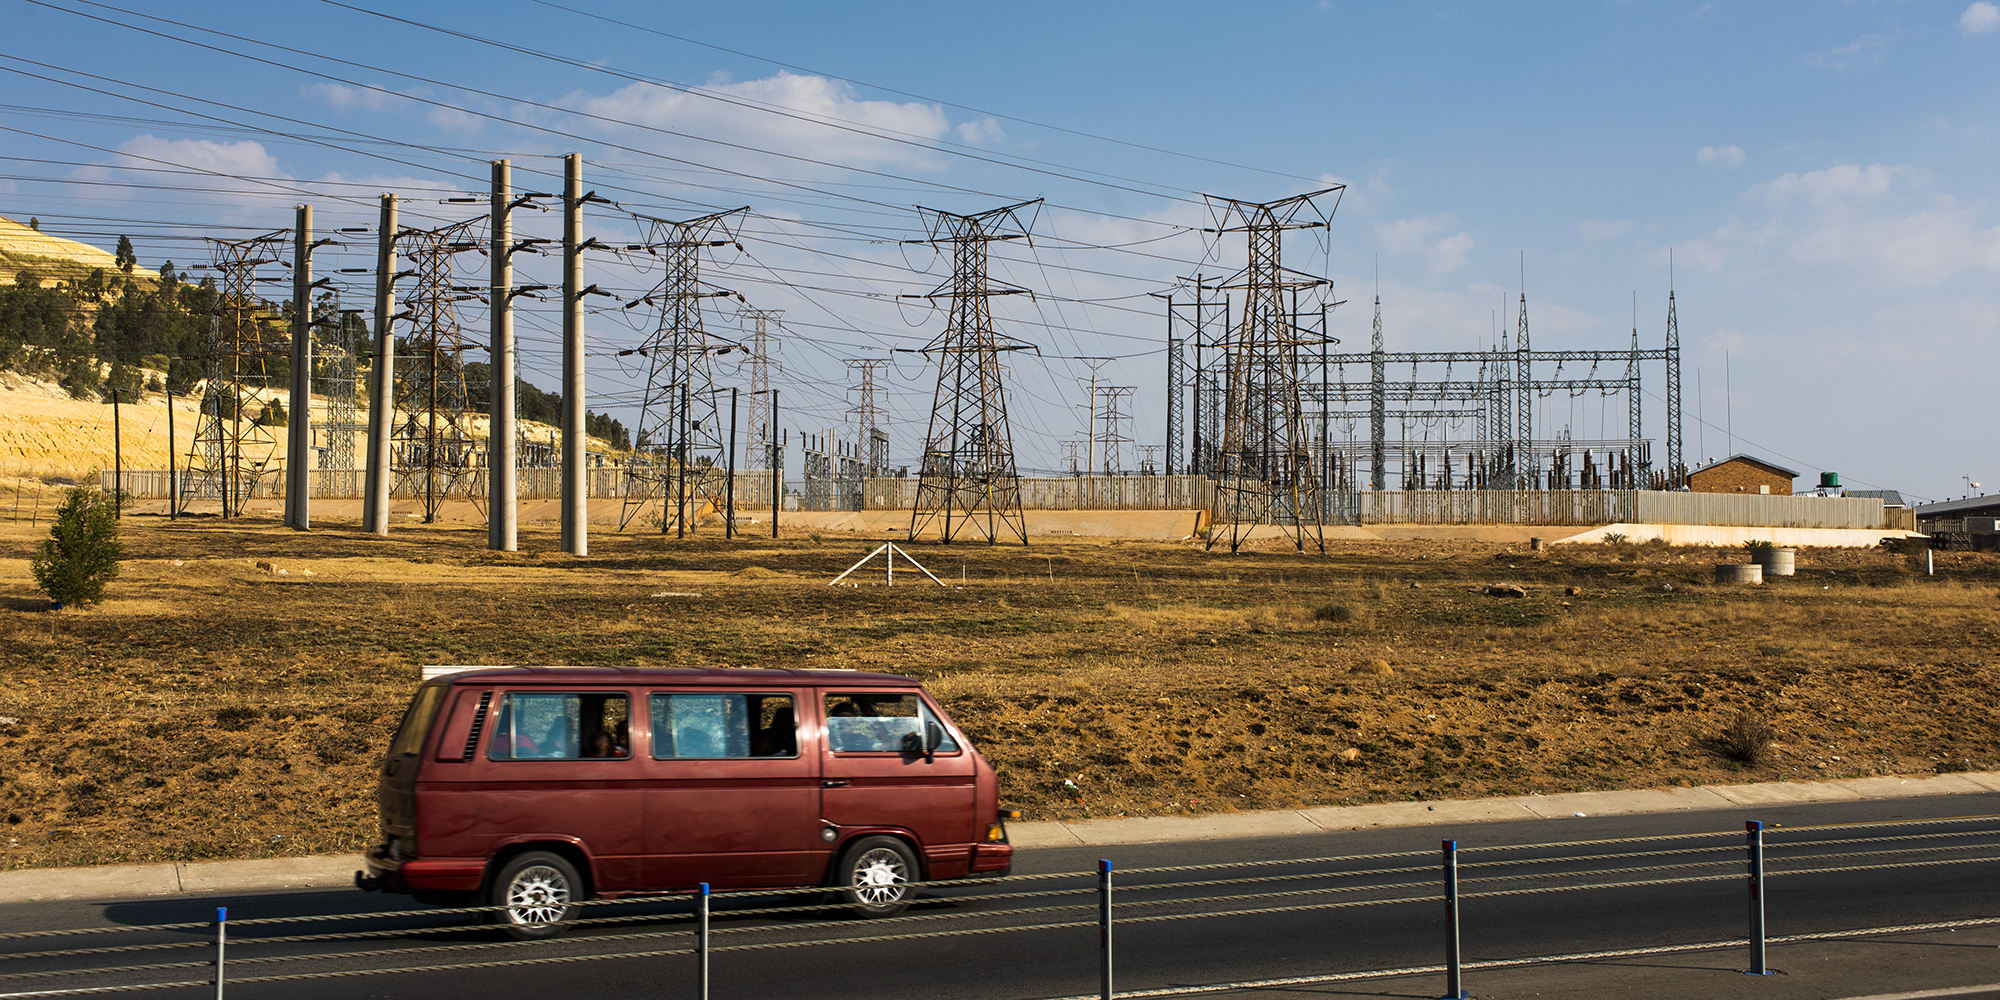 'If you are serious about fixing Eskom, arrest State Capture criminals' - Daily Maverick